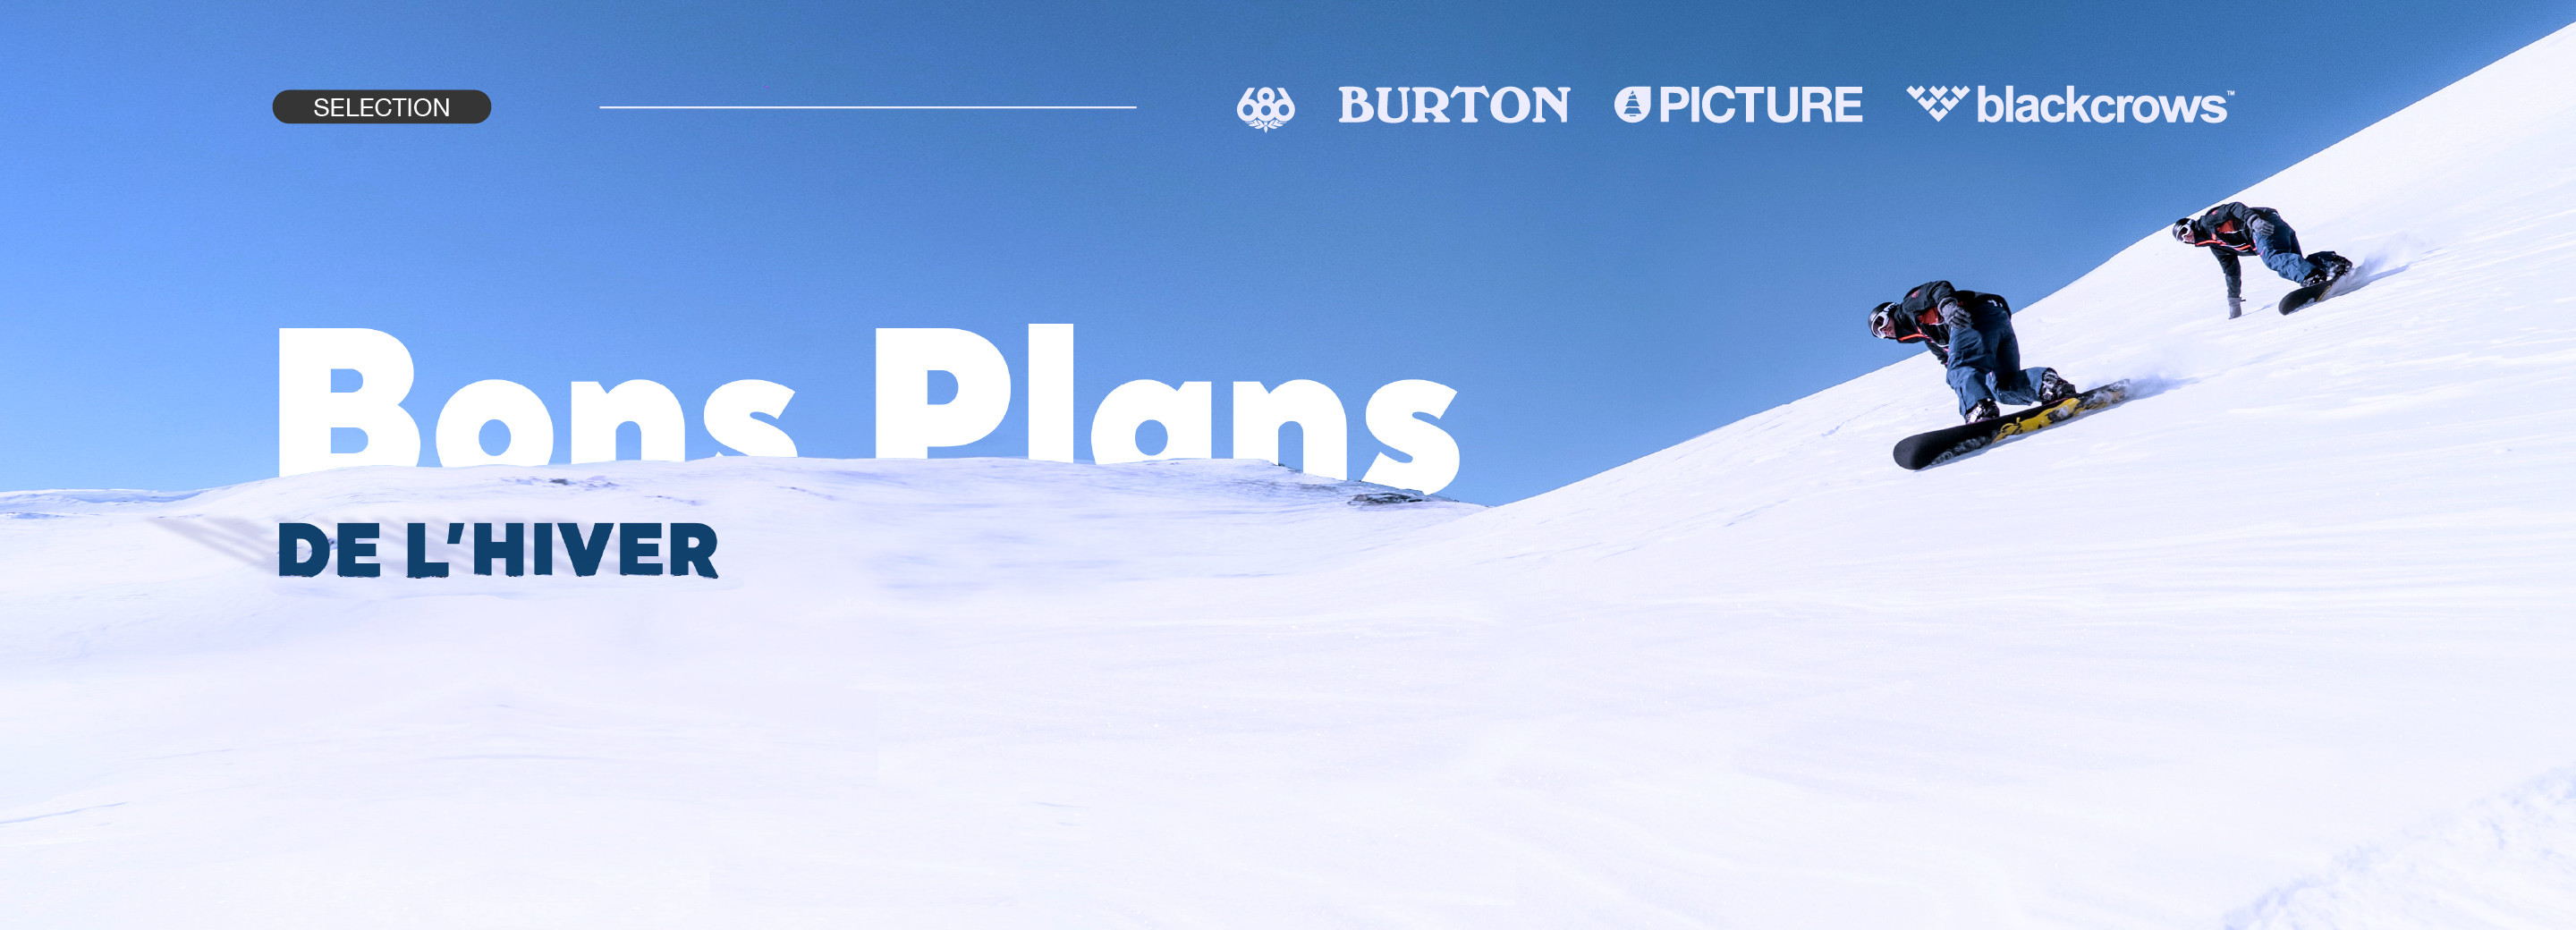 Bons Plans de l'hiver version desktop